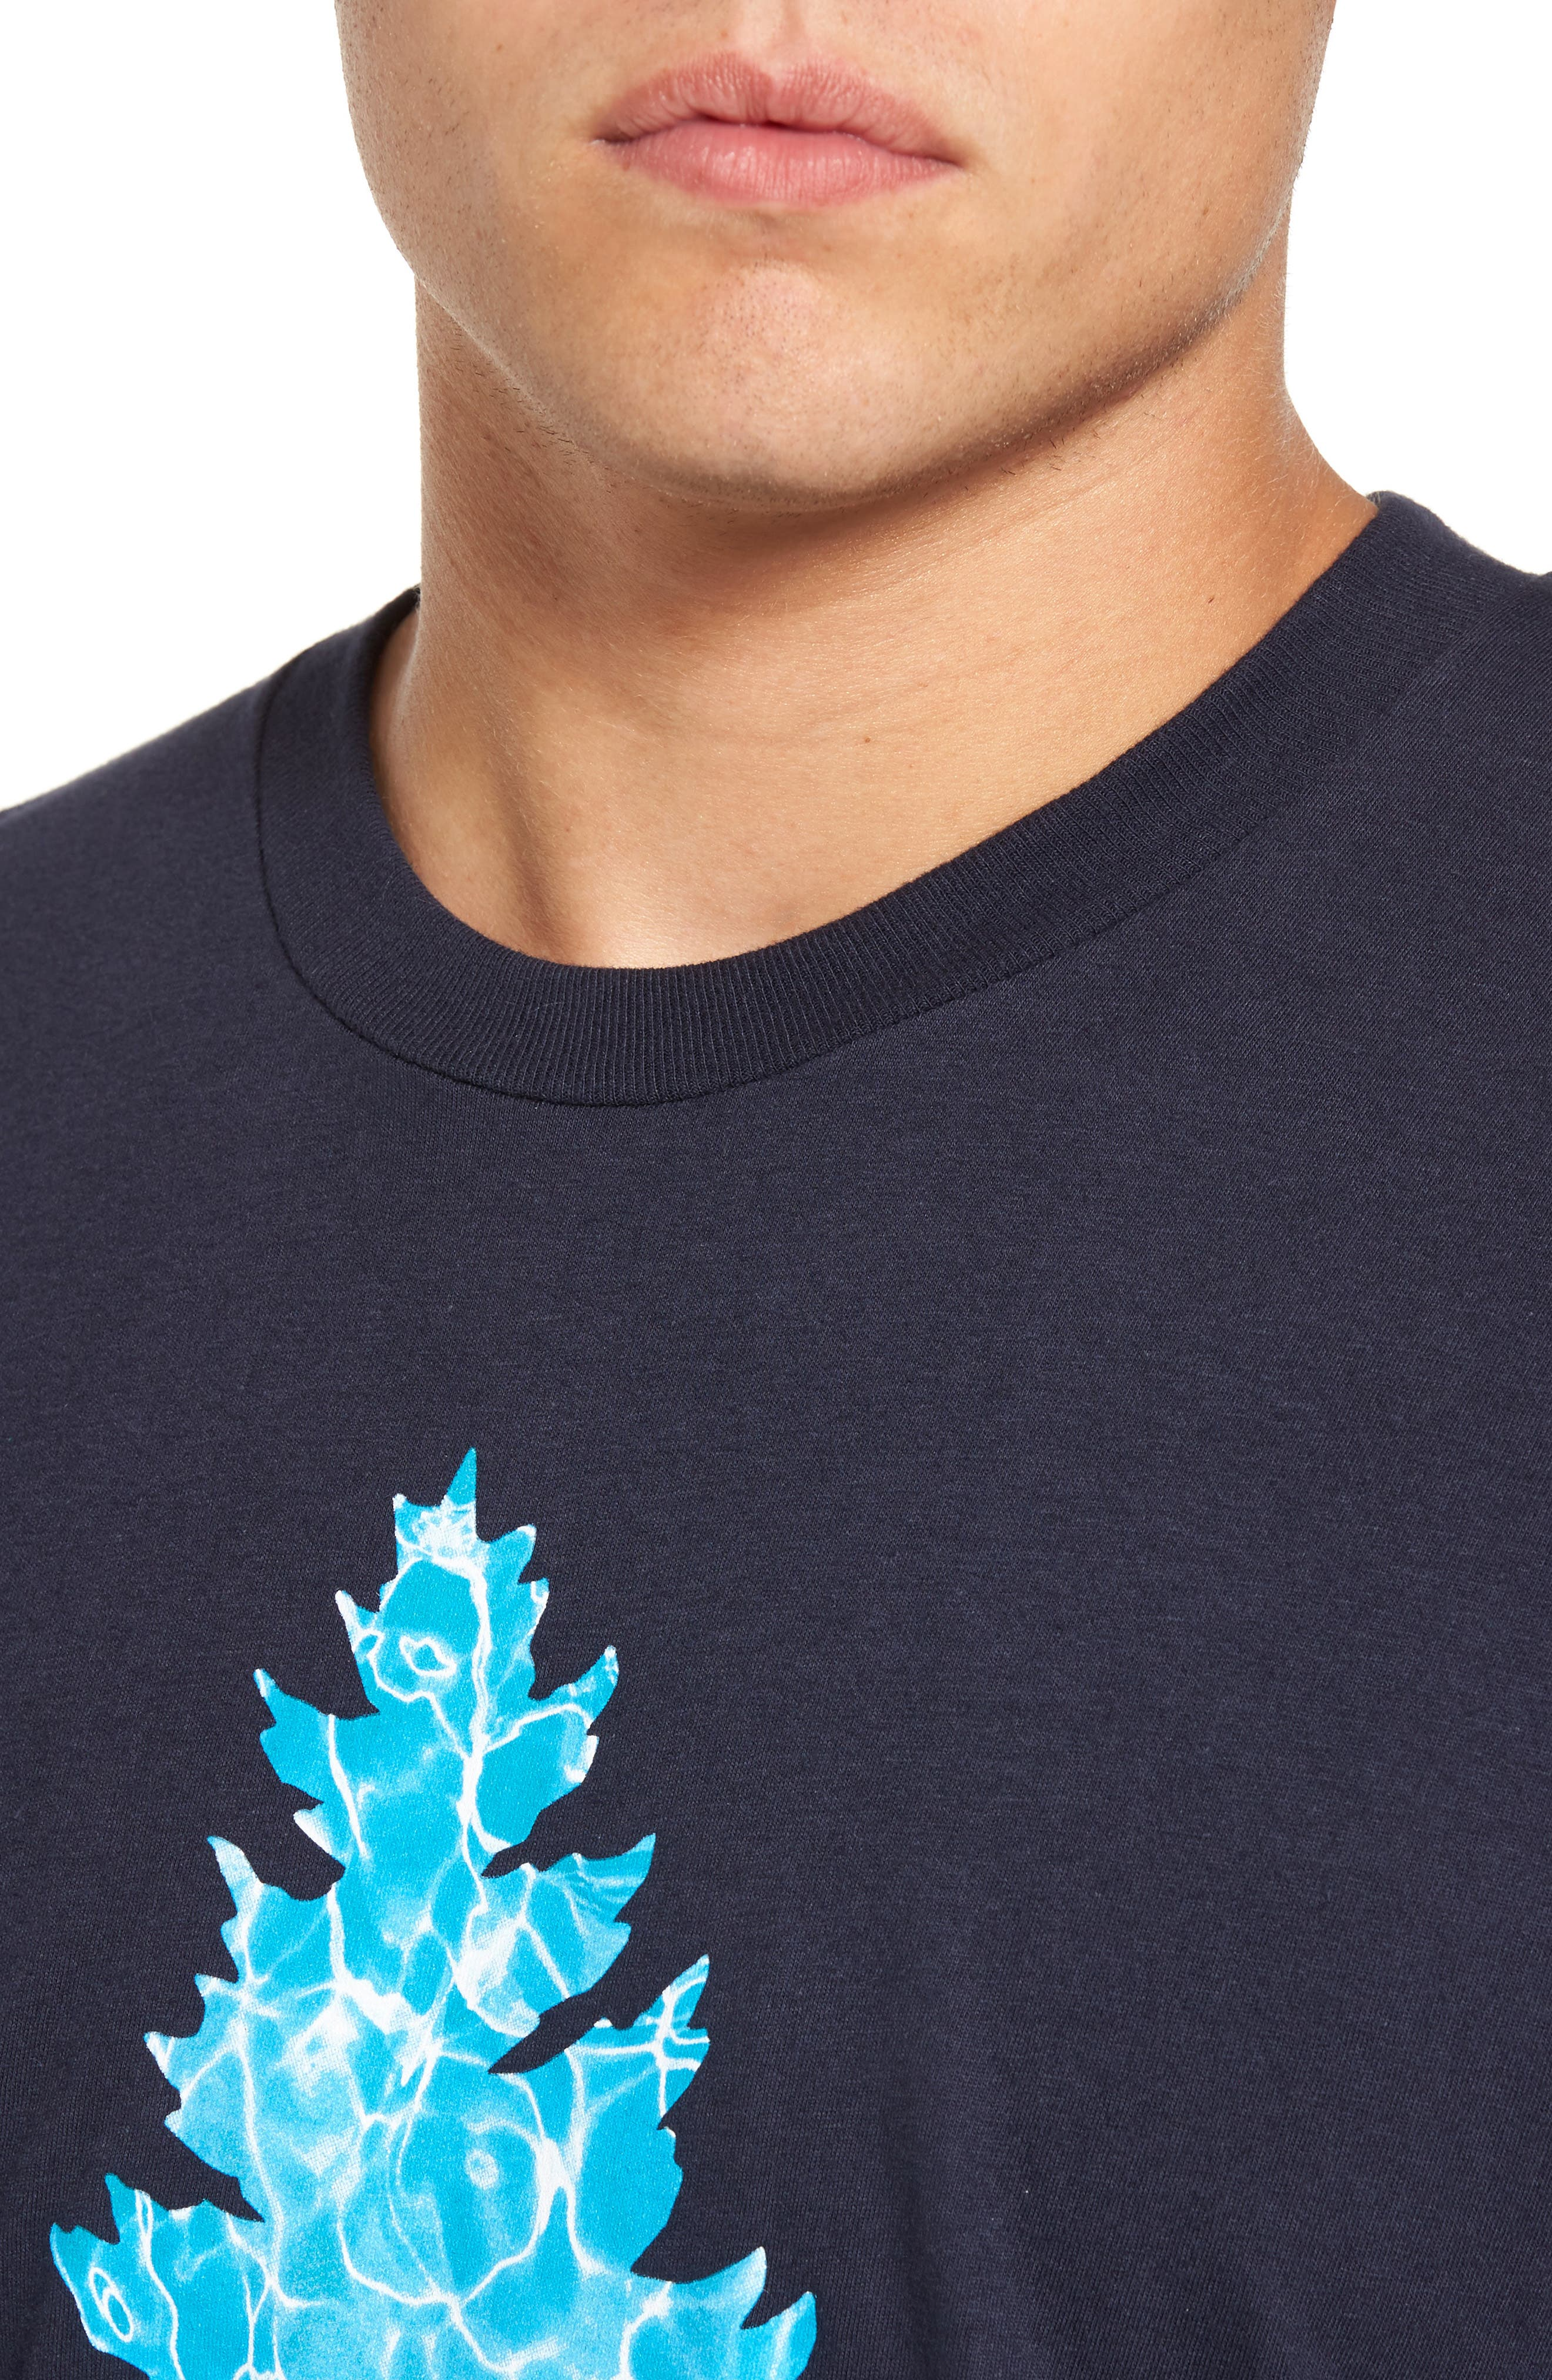 Johnny Tree Pool Graphic T-Shirt,                             Alternate thumbnail 4, color,                             Navy